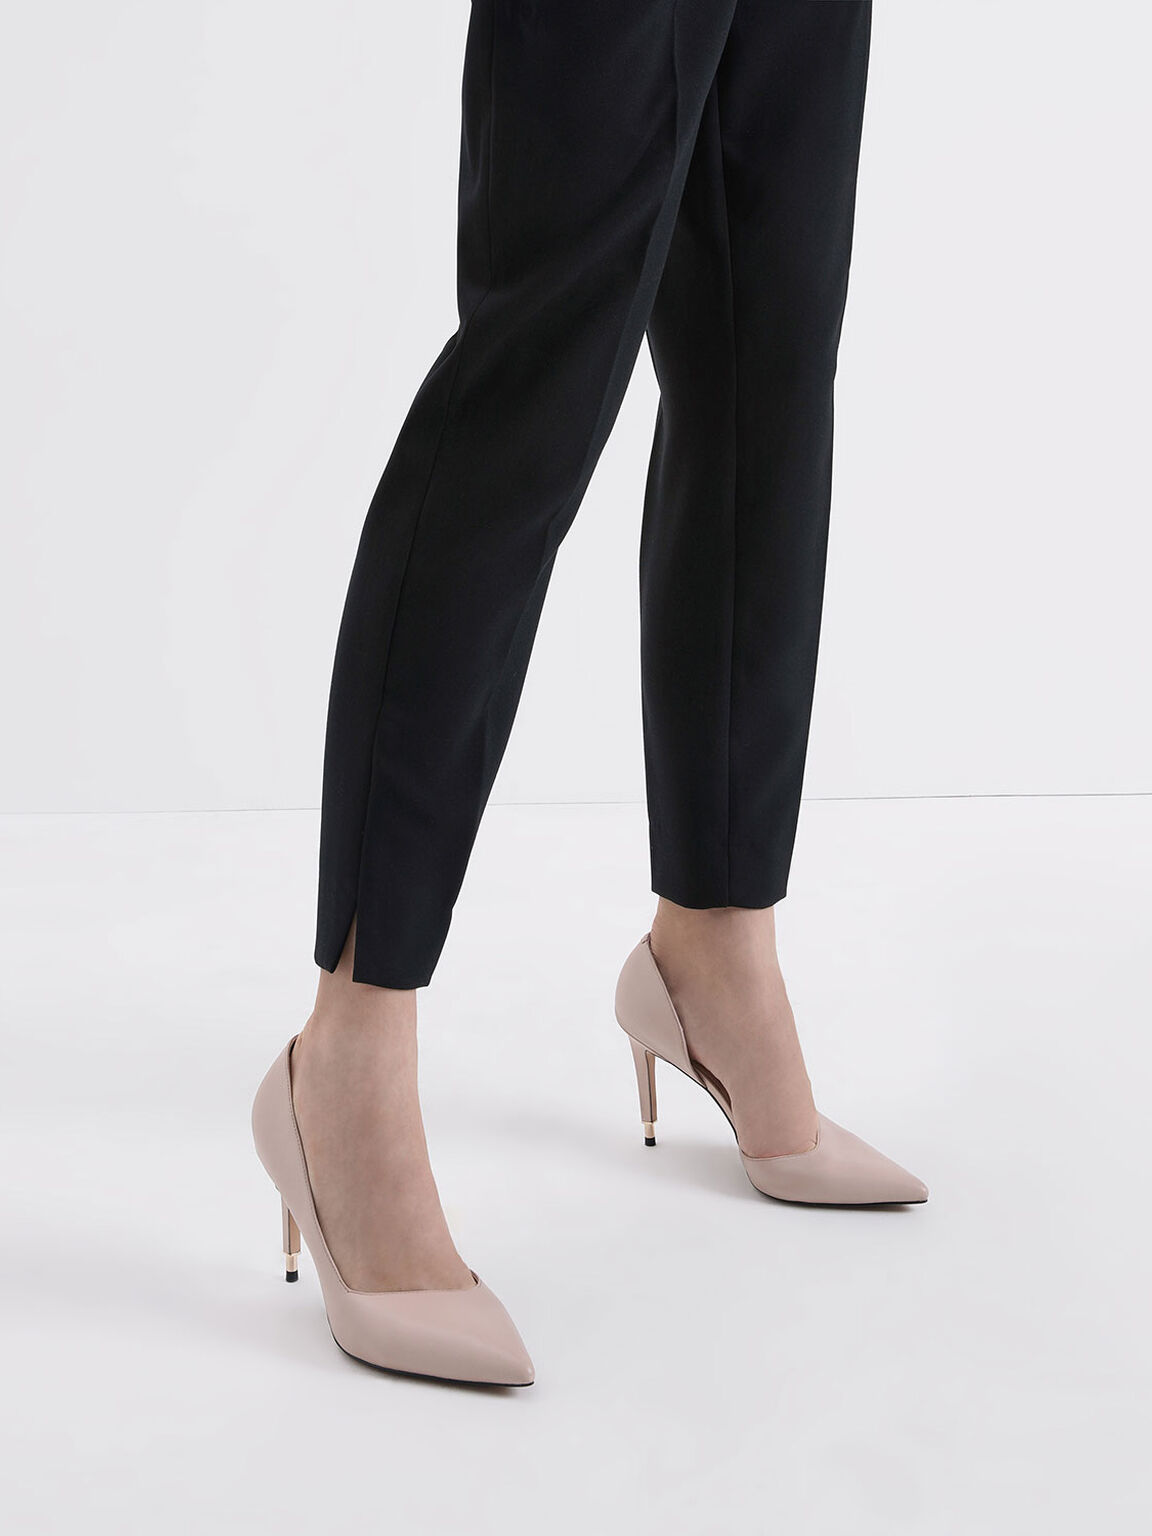 Leather D'Orsay Pumps, Nude, hi-res